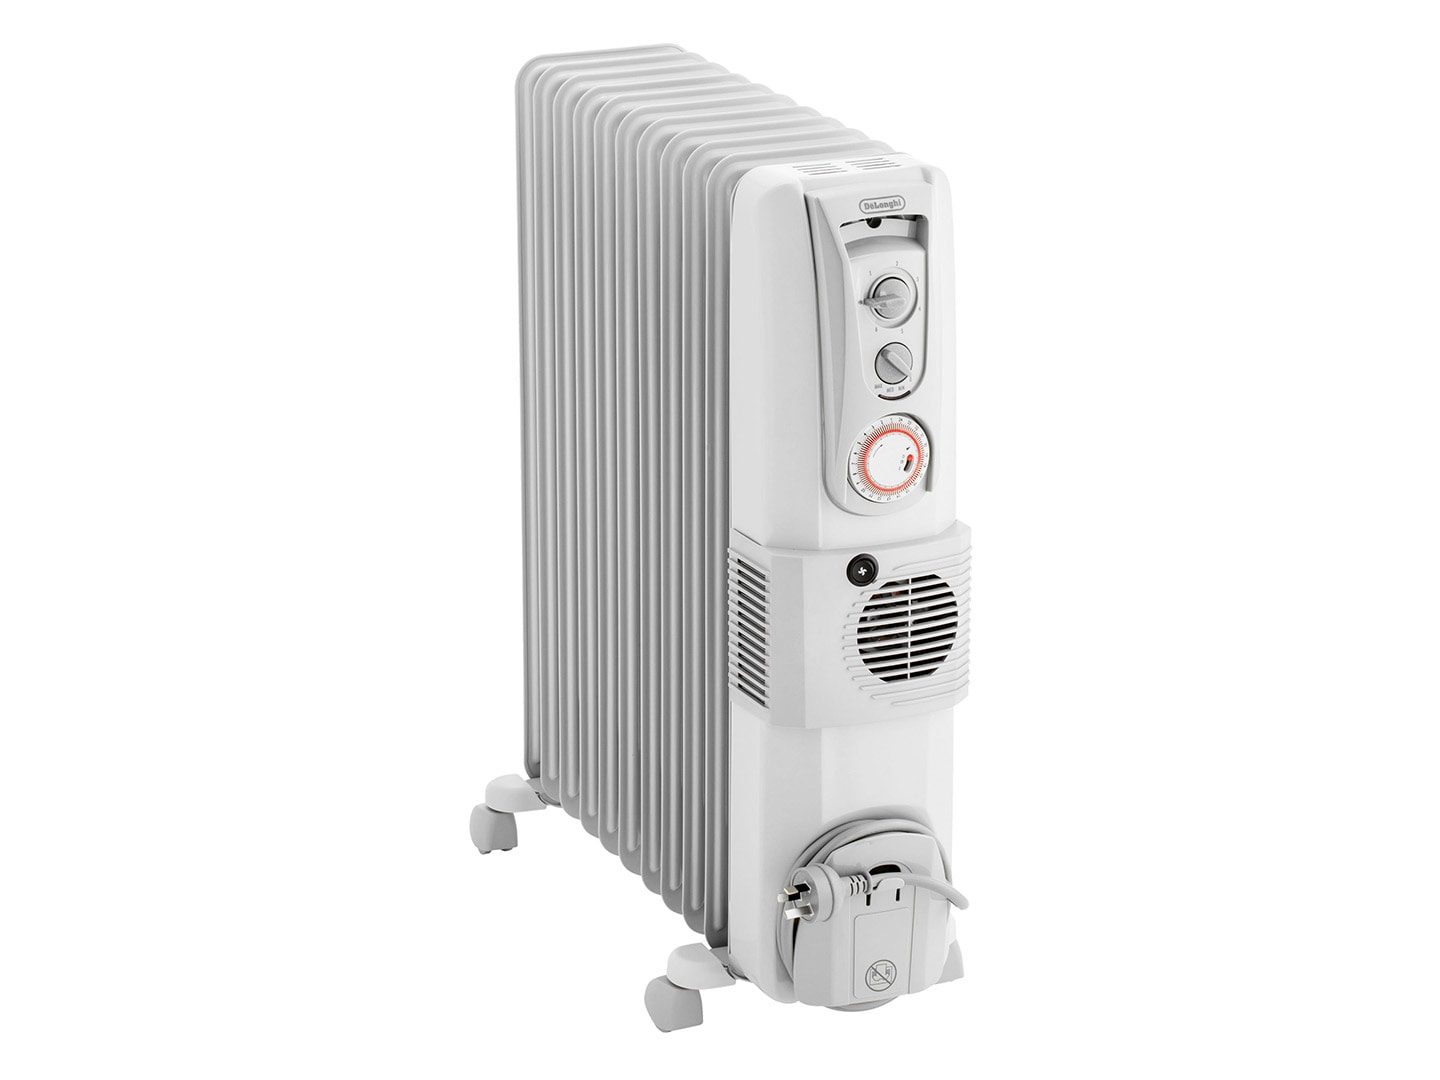 Dl 2401tf 2400w Oil Column Heater With Fan Delonghi